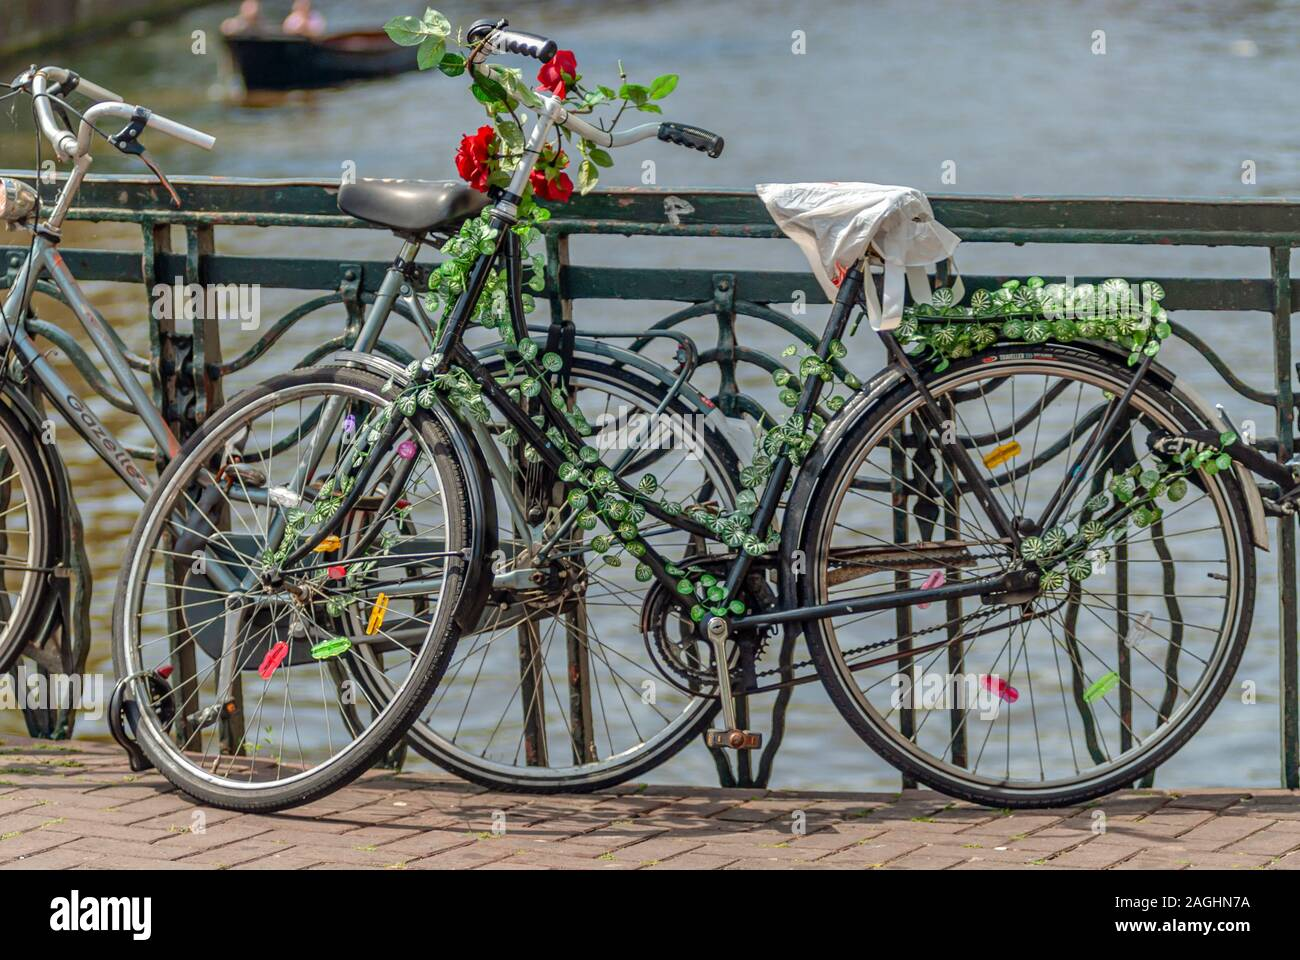 Single old bicycle with roses parked on a bridge in the inner city of Amsterdam, Netherlands Stock Photo